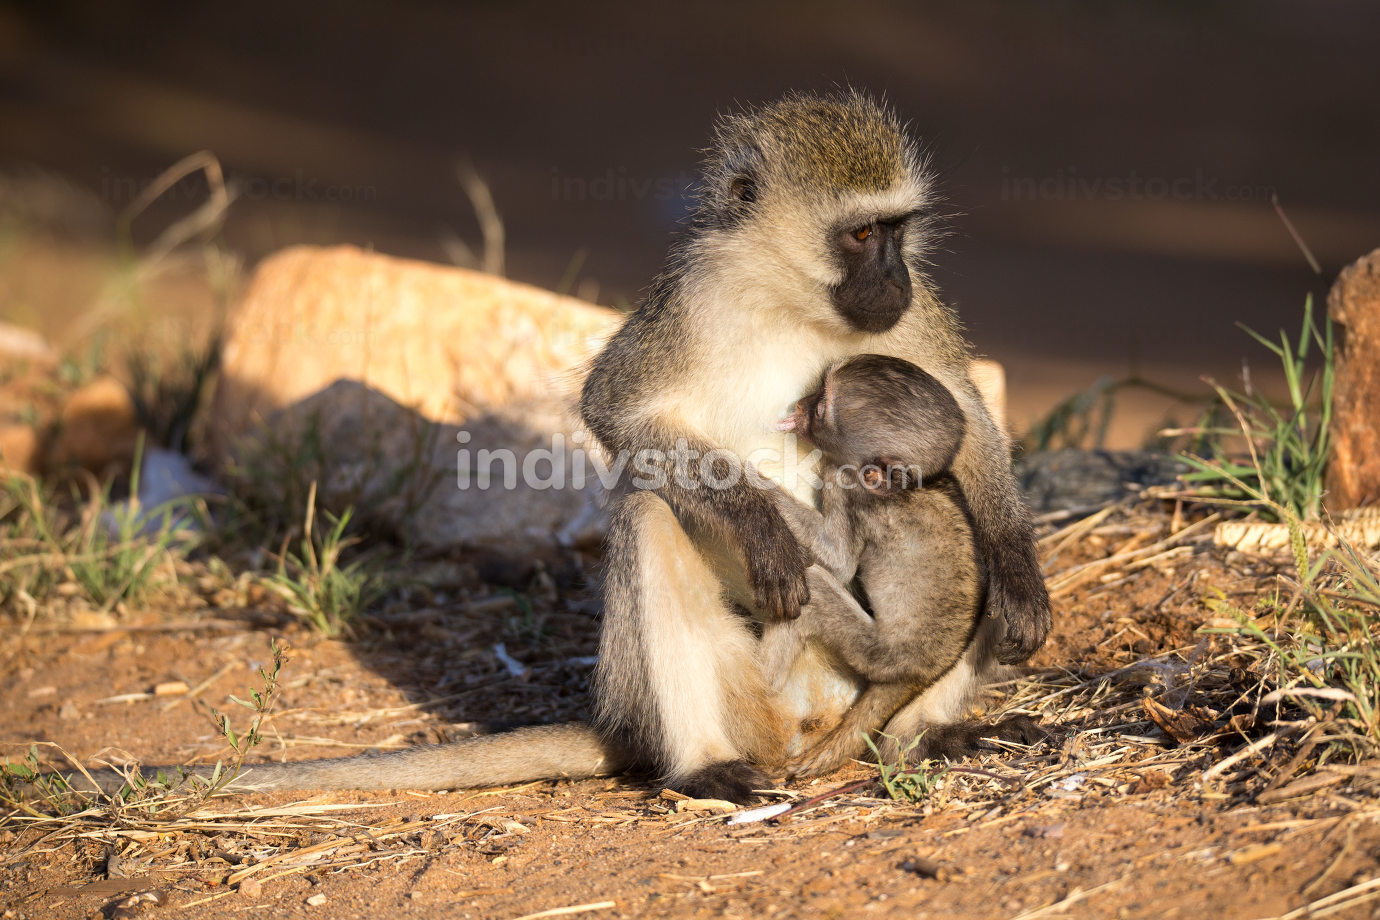 A monkey with a baby monkey in the arm